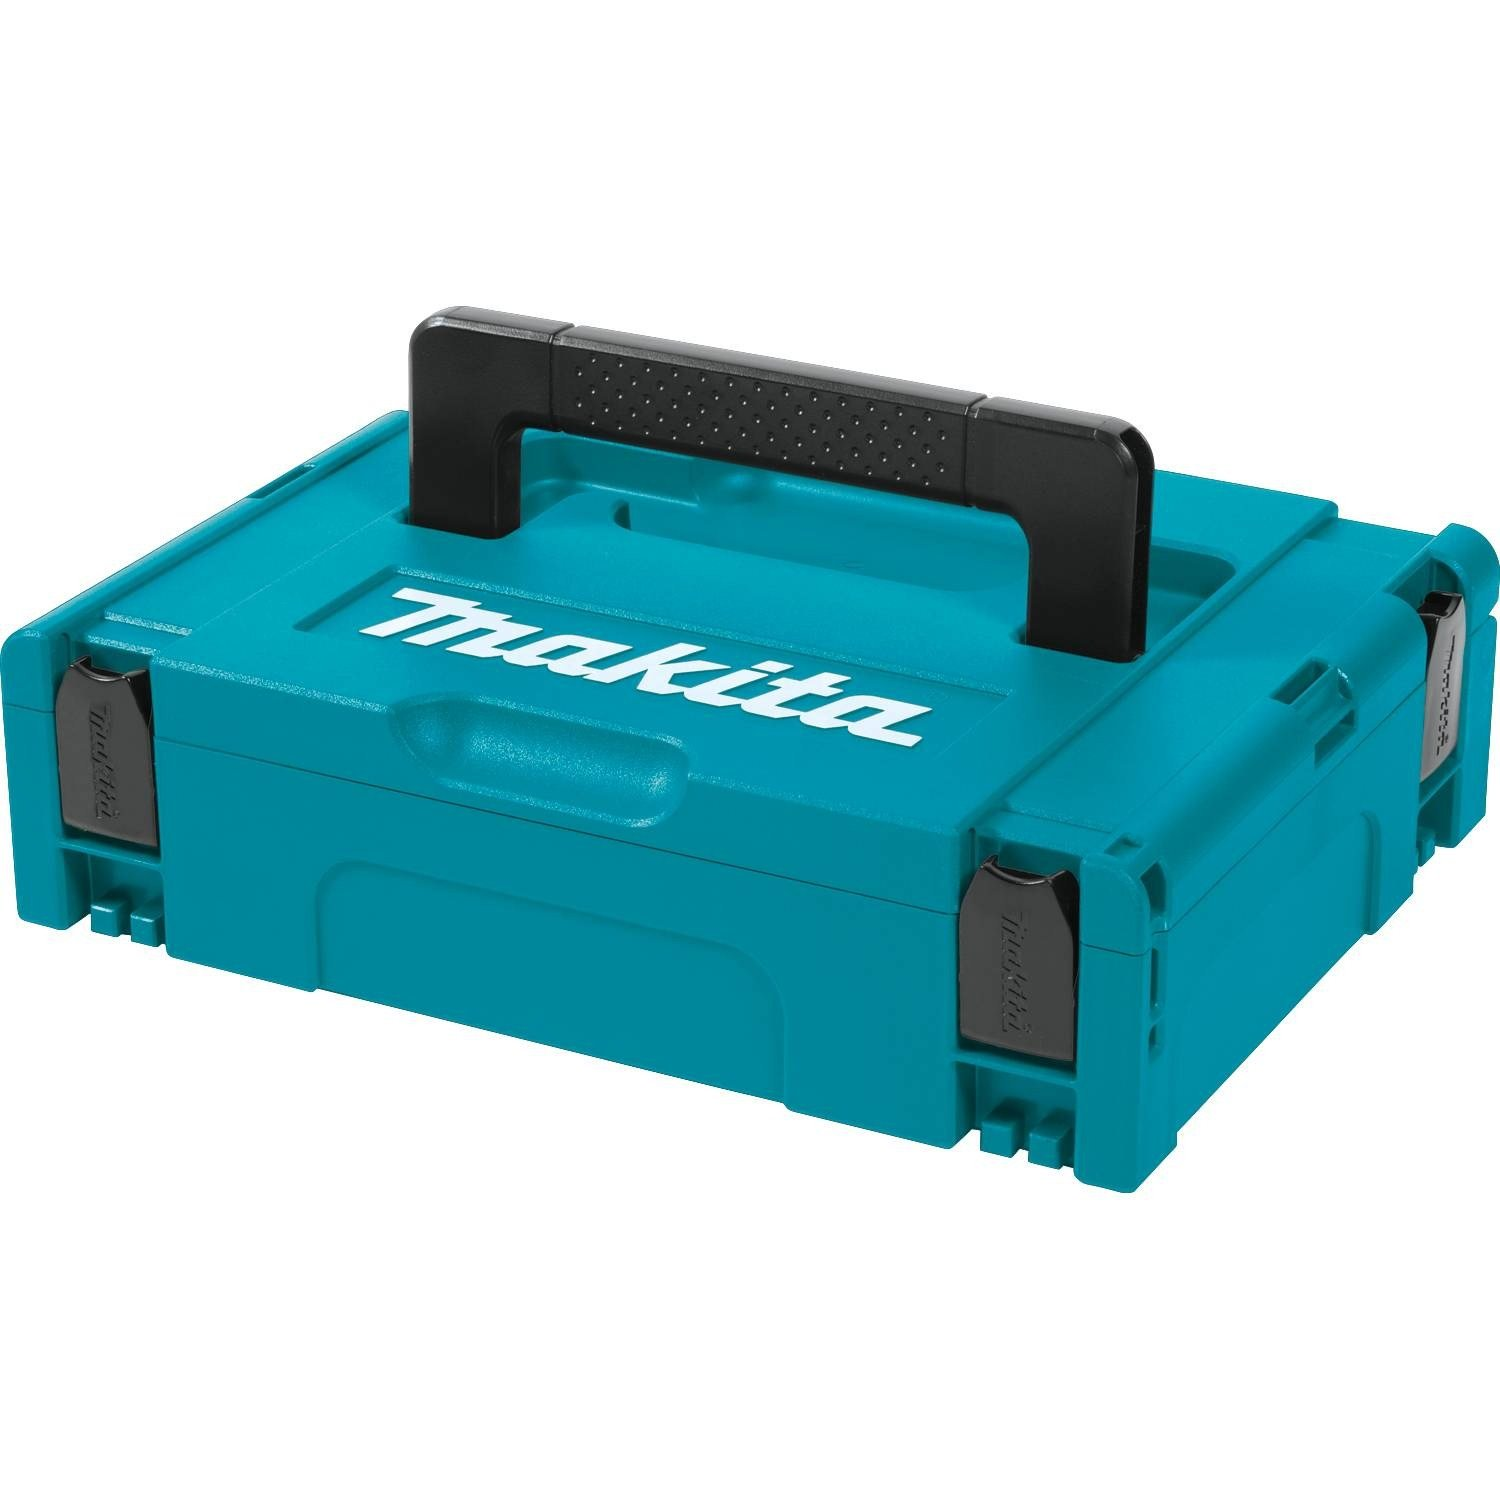 Makita 197210-9 Interlocking Case, Small 4-3/8'' x 15-1/2'' x 11-5/8''